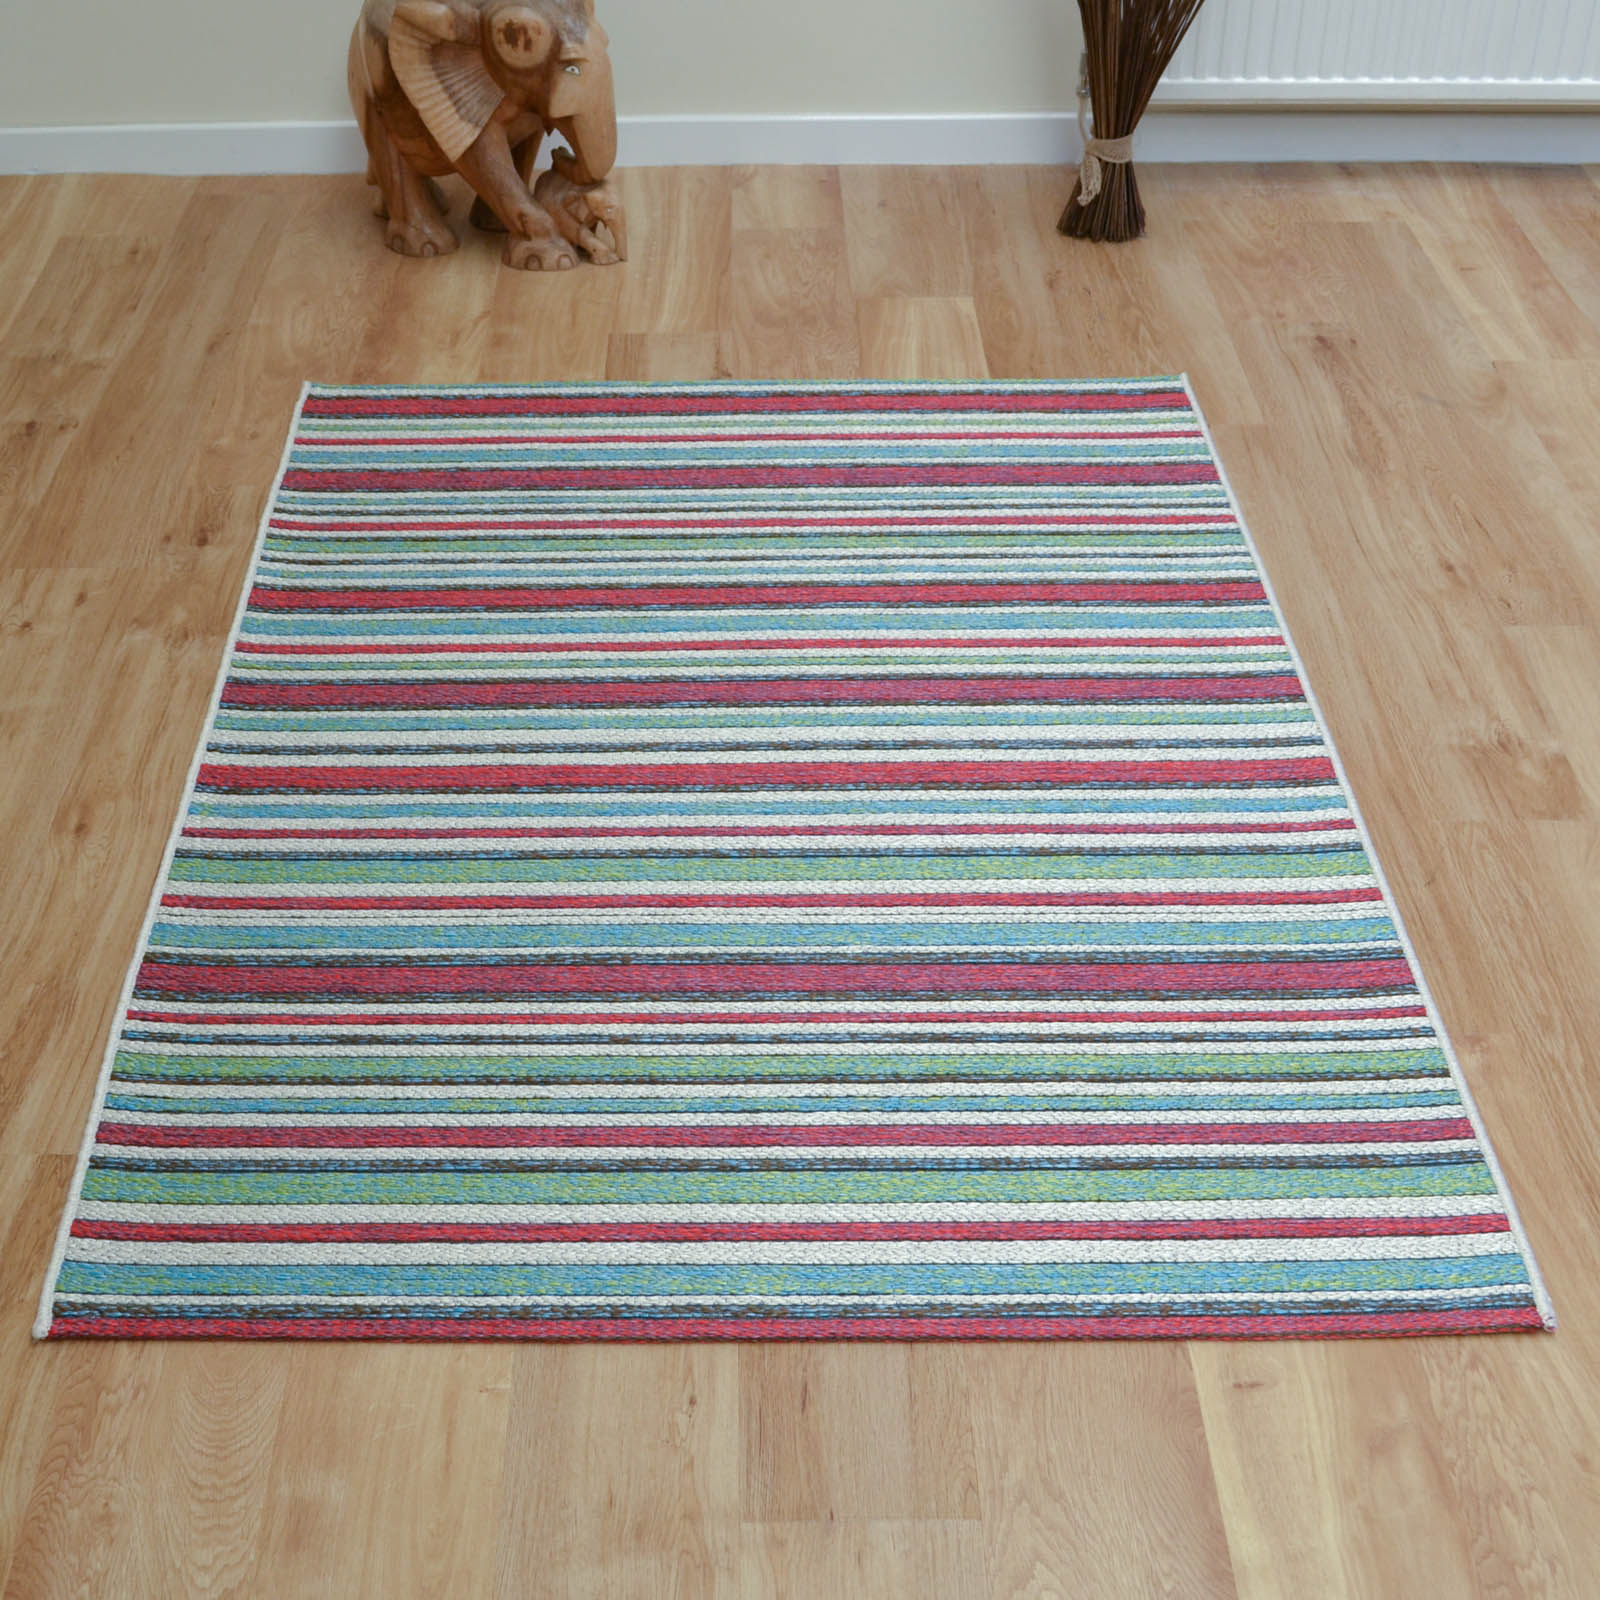 Brighton Rugs 98170 9001 in Red and Blue